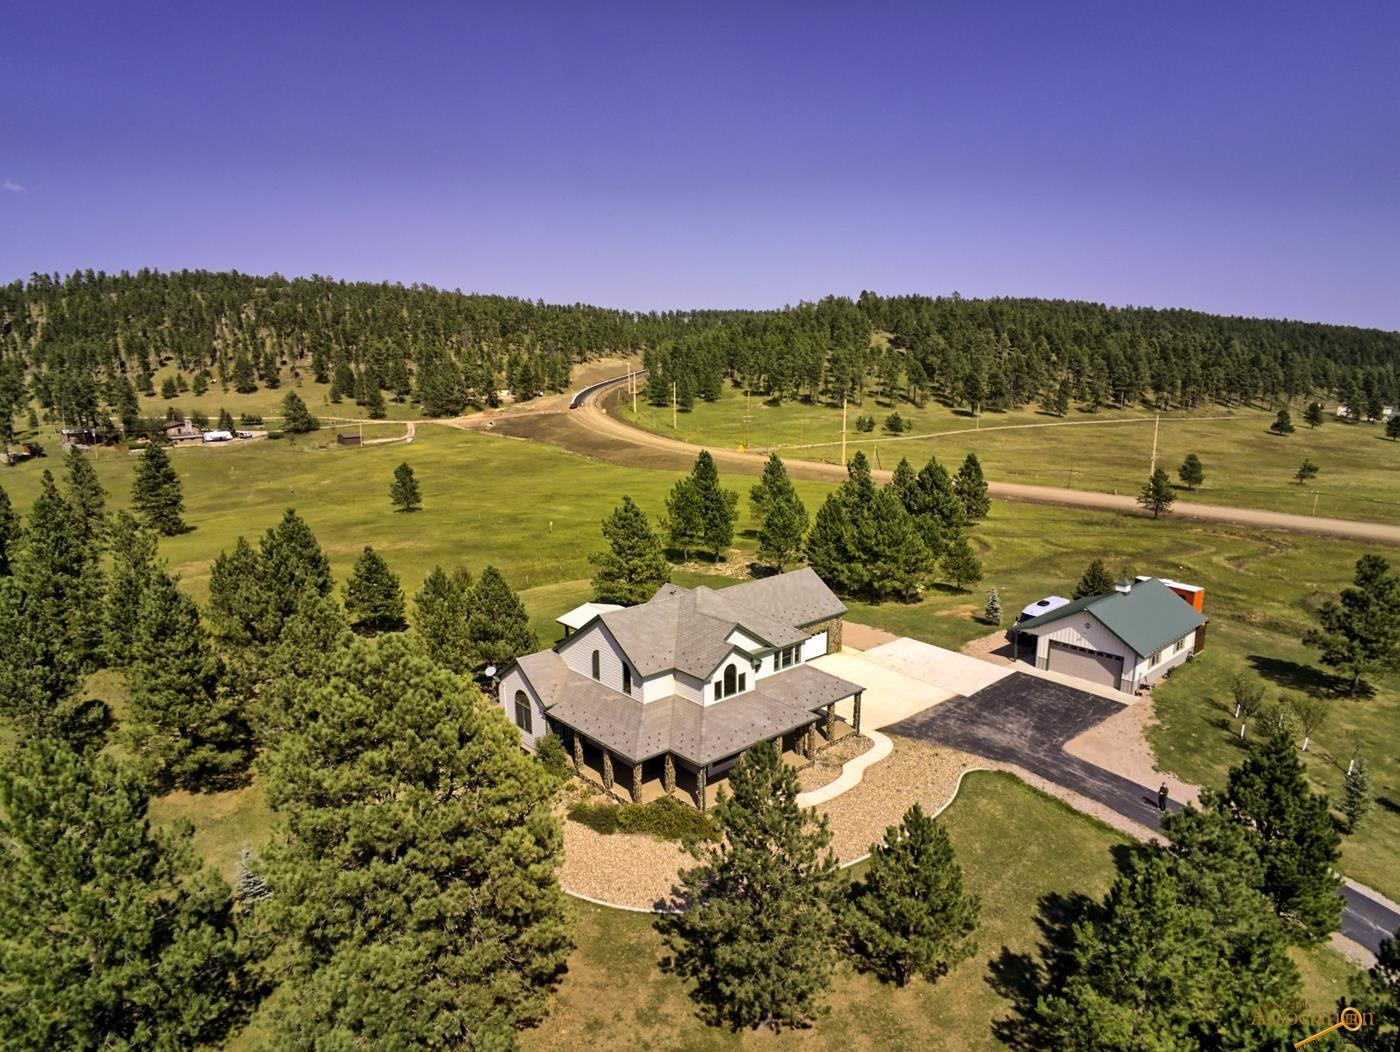 Welcome home to this spectacular retreat that's only minutes from Rapid City but offers all of the serenity that the Black Hills has to offer! Beautiful views in all directions can be taken in from the covered wrap around front porch. Entertain a large group with ease under the huge covered back patio or ride your horse to the adjacent National Forest Service from this horse friendly property! The inside of this house is remarkable too! A two story living room is the centerpiece of the home surrounded by the well appointed kitchen with breakfast nook, formal dining, large master suite with travertine tiled floors and shower and walk-in closet, laundry, powder room and state of the art theatre room that will make everyone want to see the big game at your place. Upstairs has two nice sized bedrooms and a guest bath and the basement offers a huge family room, workout room, bedroom and another bath. Both attached and detached garages are insulated and heated.